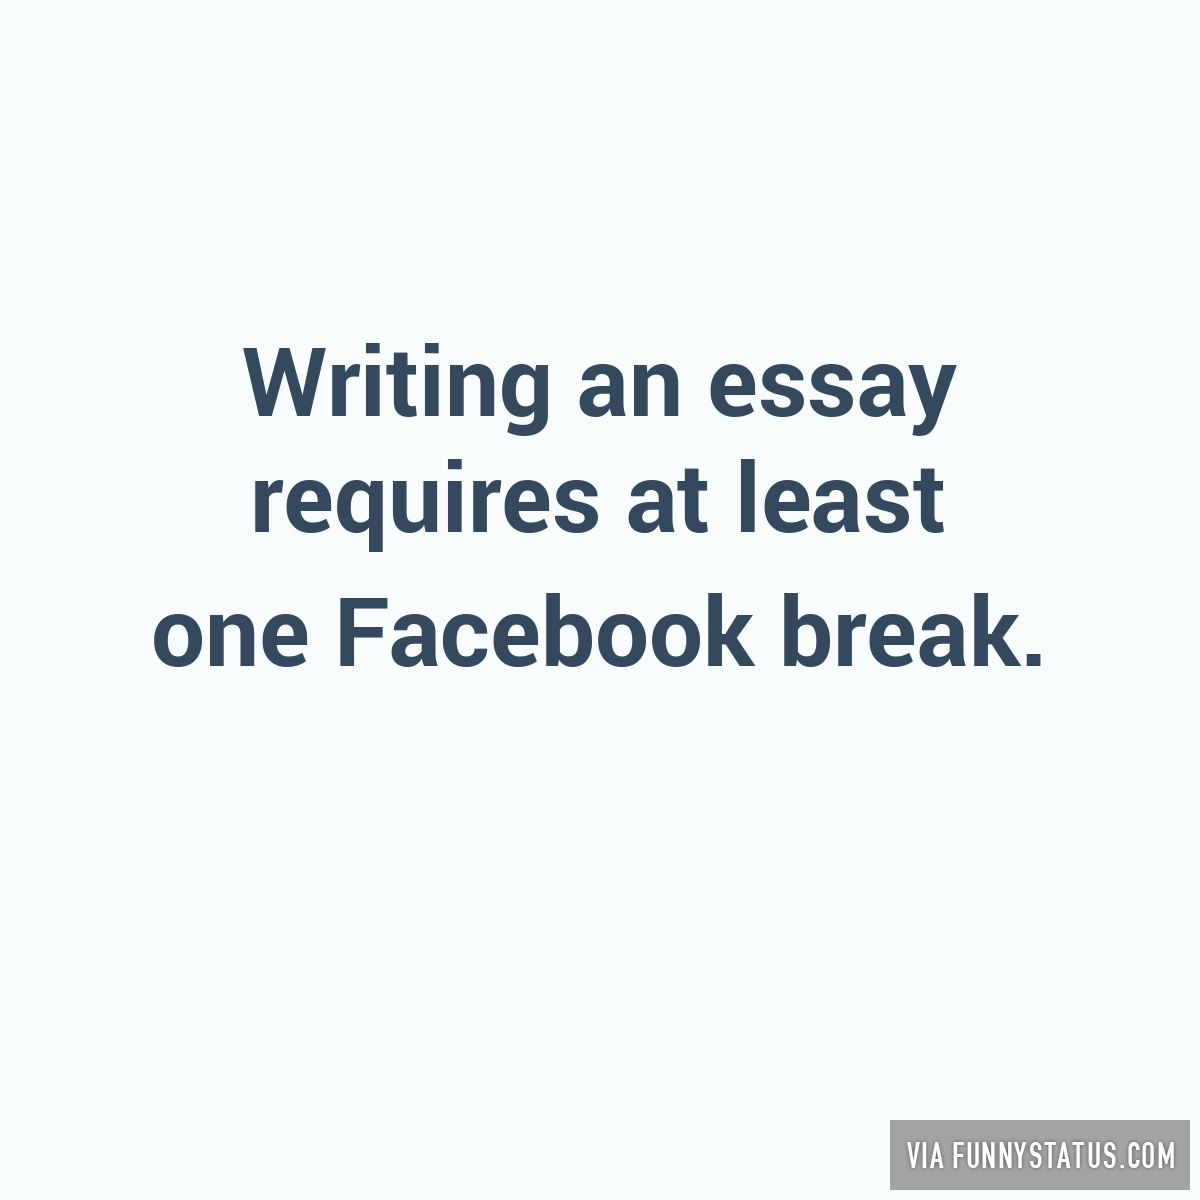 facebook essay pixels writing an essay requires at least one facebook break funny status